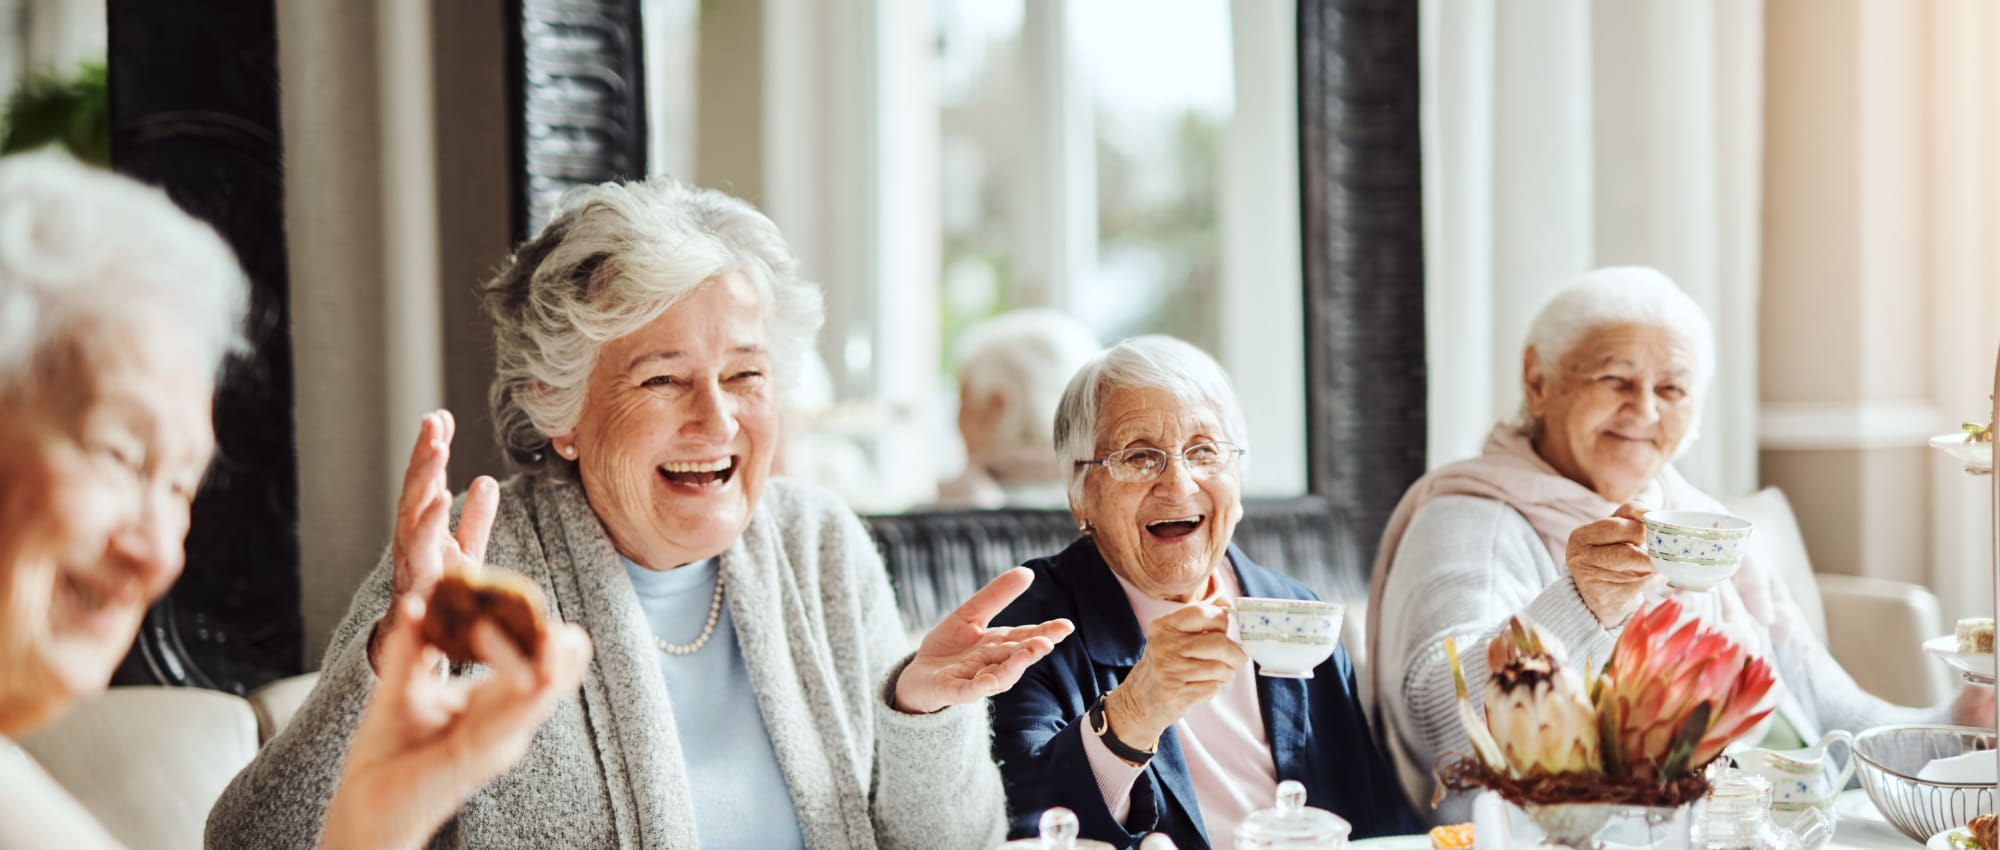 Services and amenities at Milestone Senior Living Eagle River in Eagle River, Wisconsin.